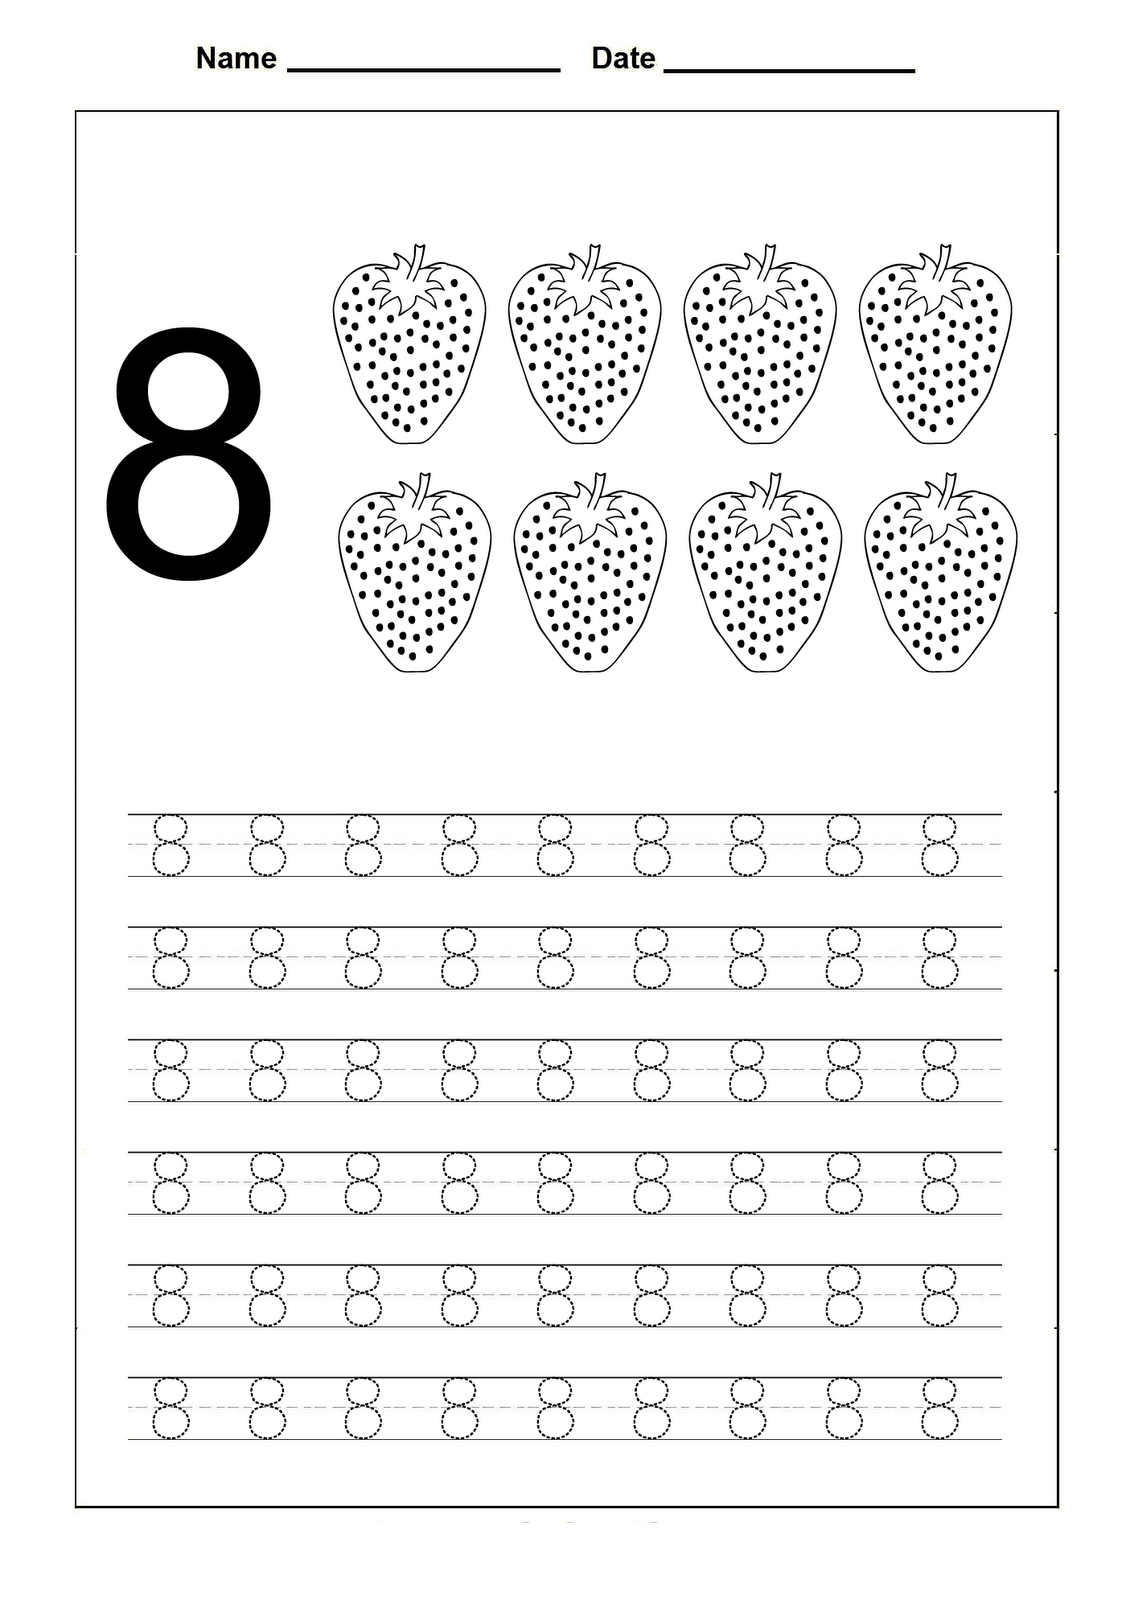 worksheet Number 8 Worksheet number 8 worksheets for children activity shelter kids shelter